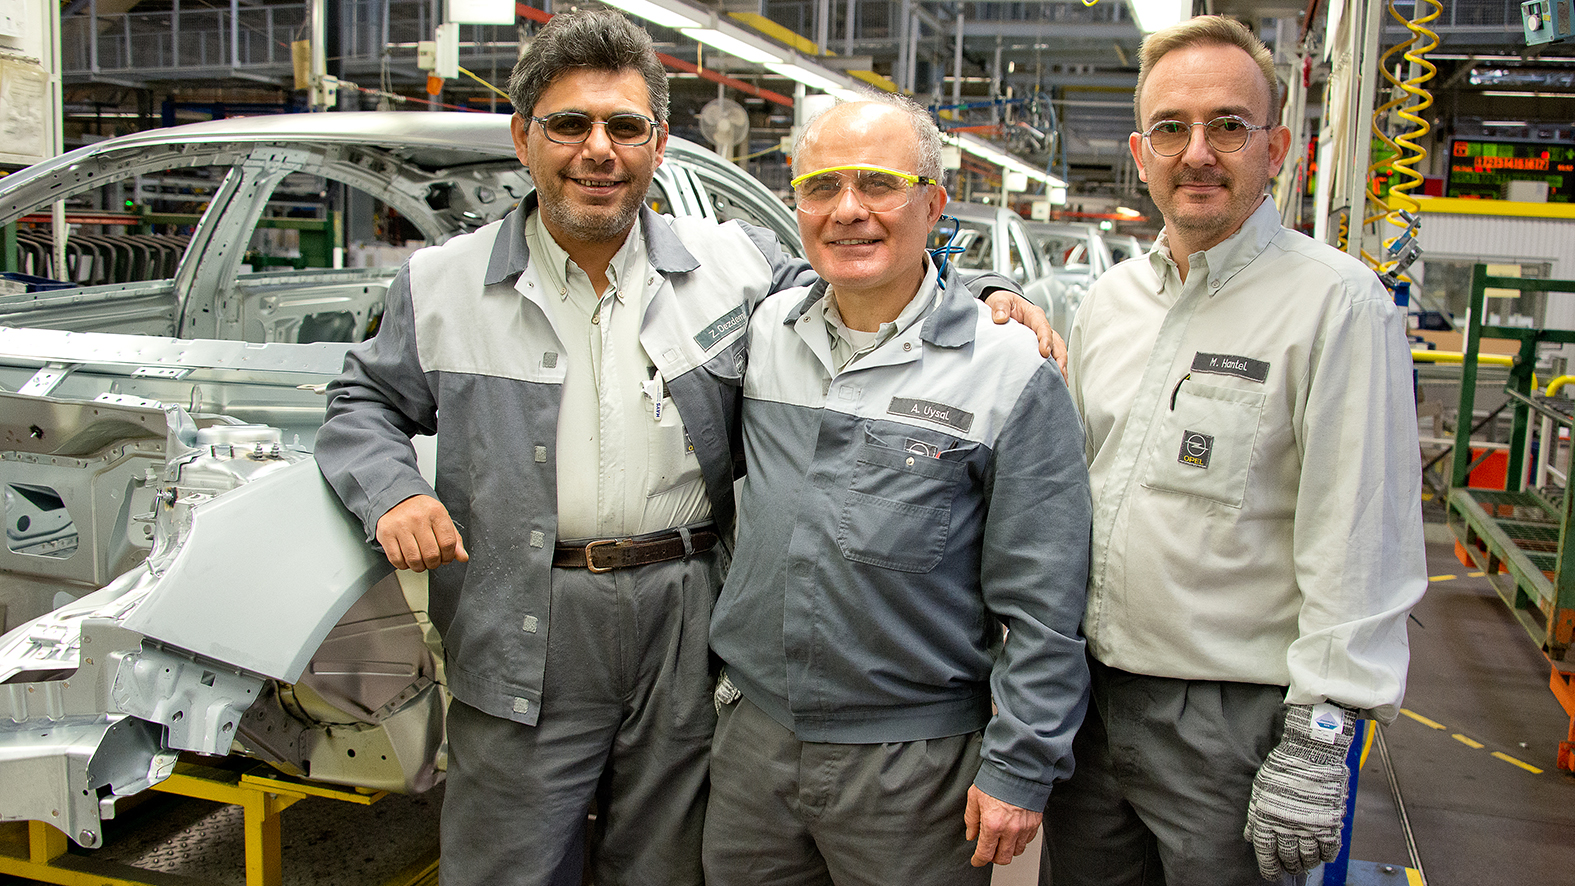 Ali Uysal (center), 54, at the production line with his colleagues Zeki Özdemir (left) and Manfred Hantel (right).